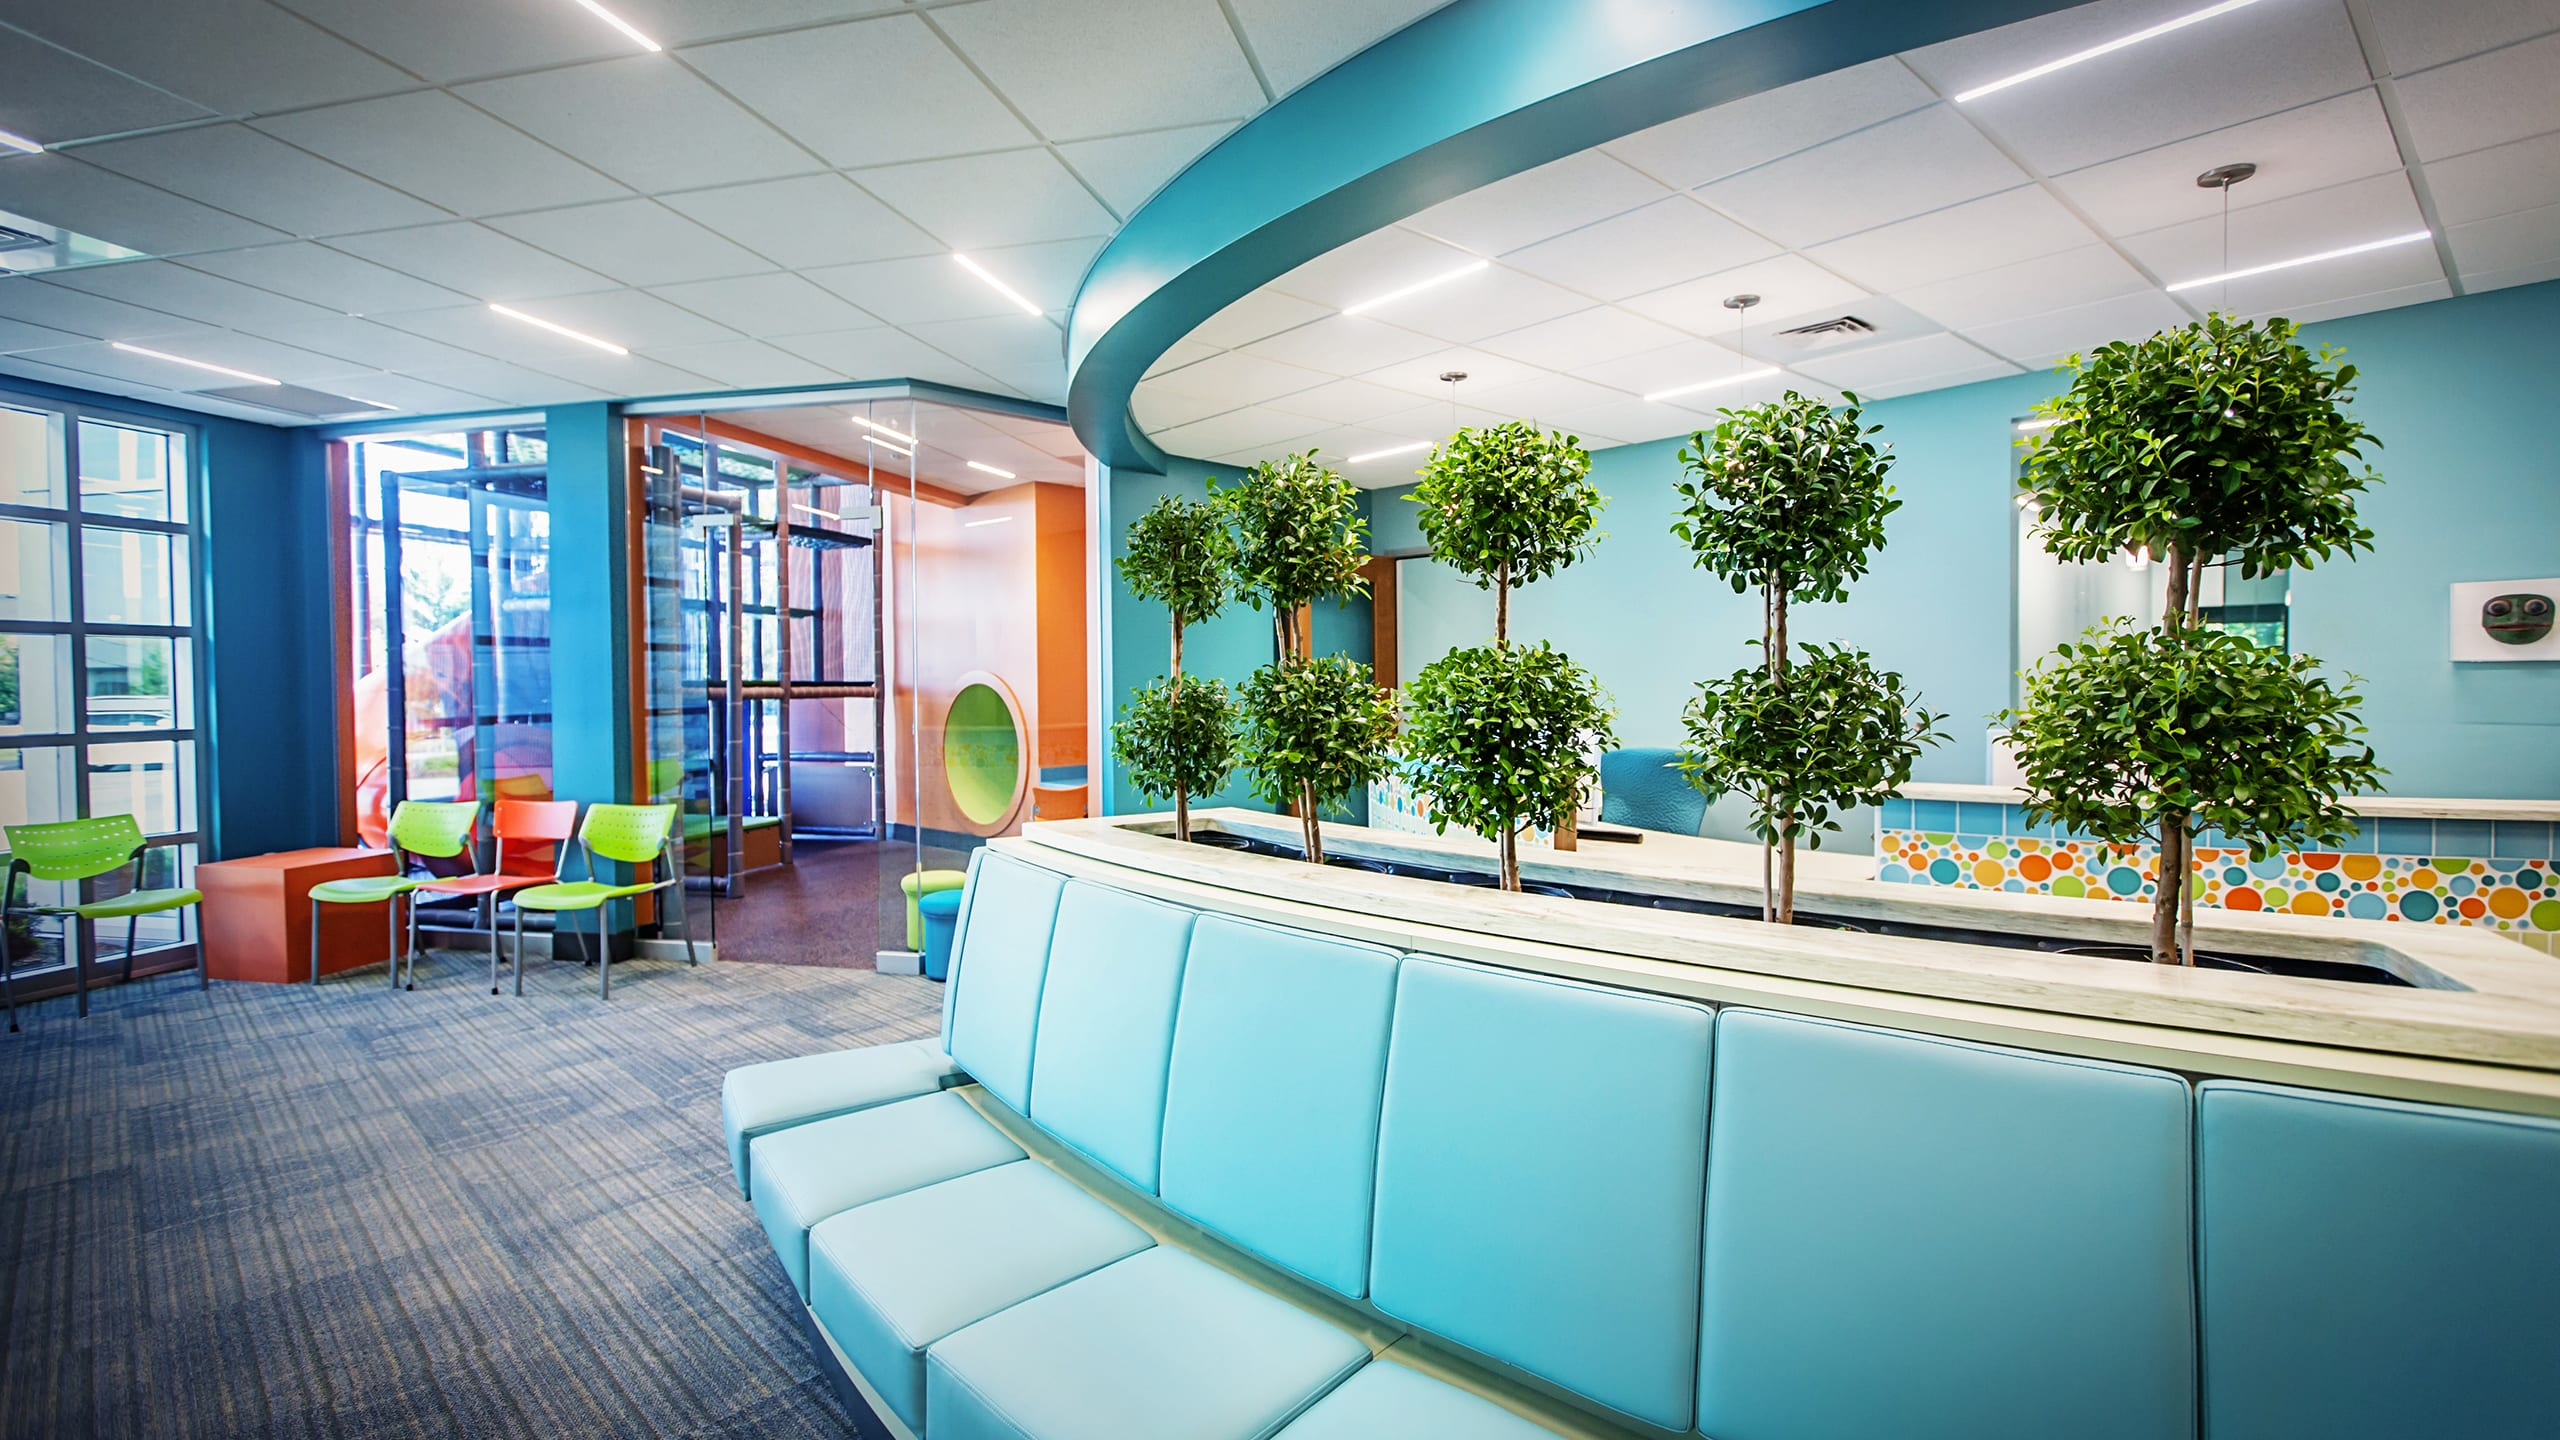 Growing Smiles Pediatric Dentistry designed by Architect One